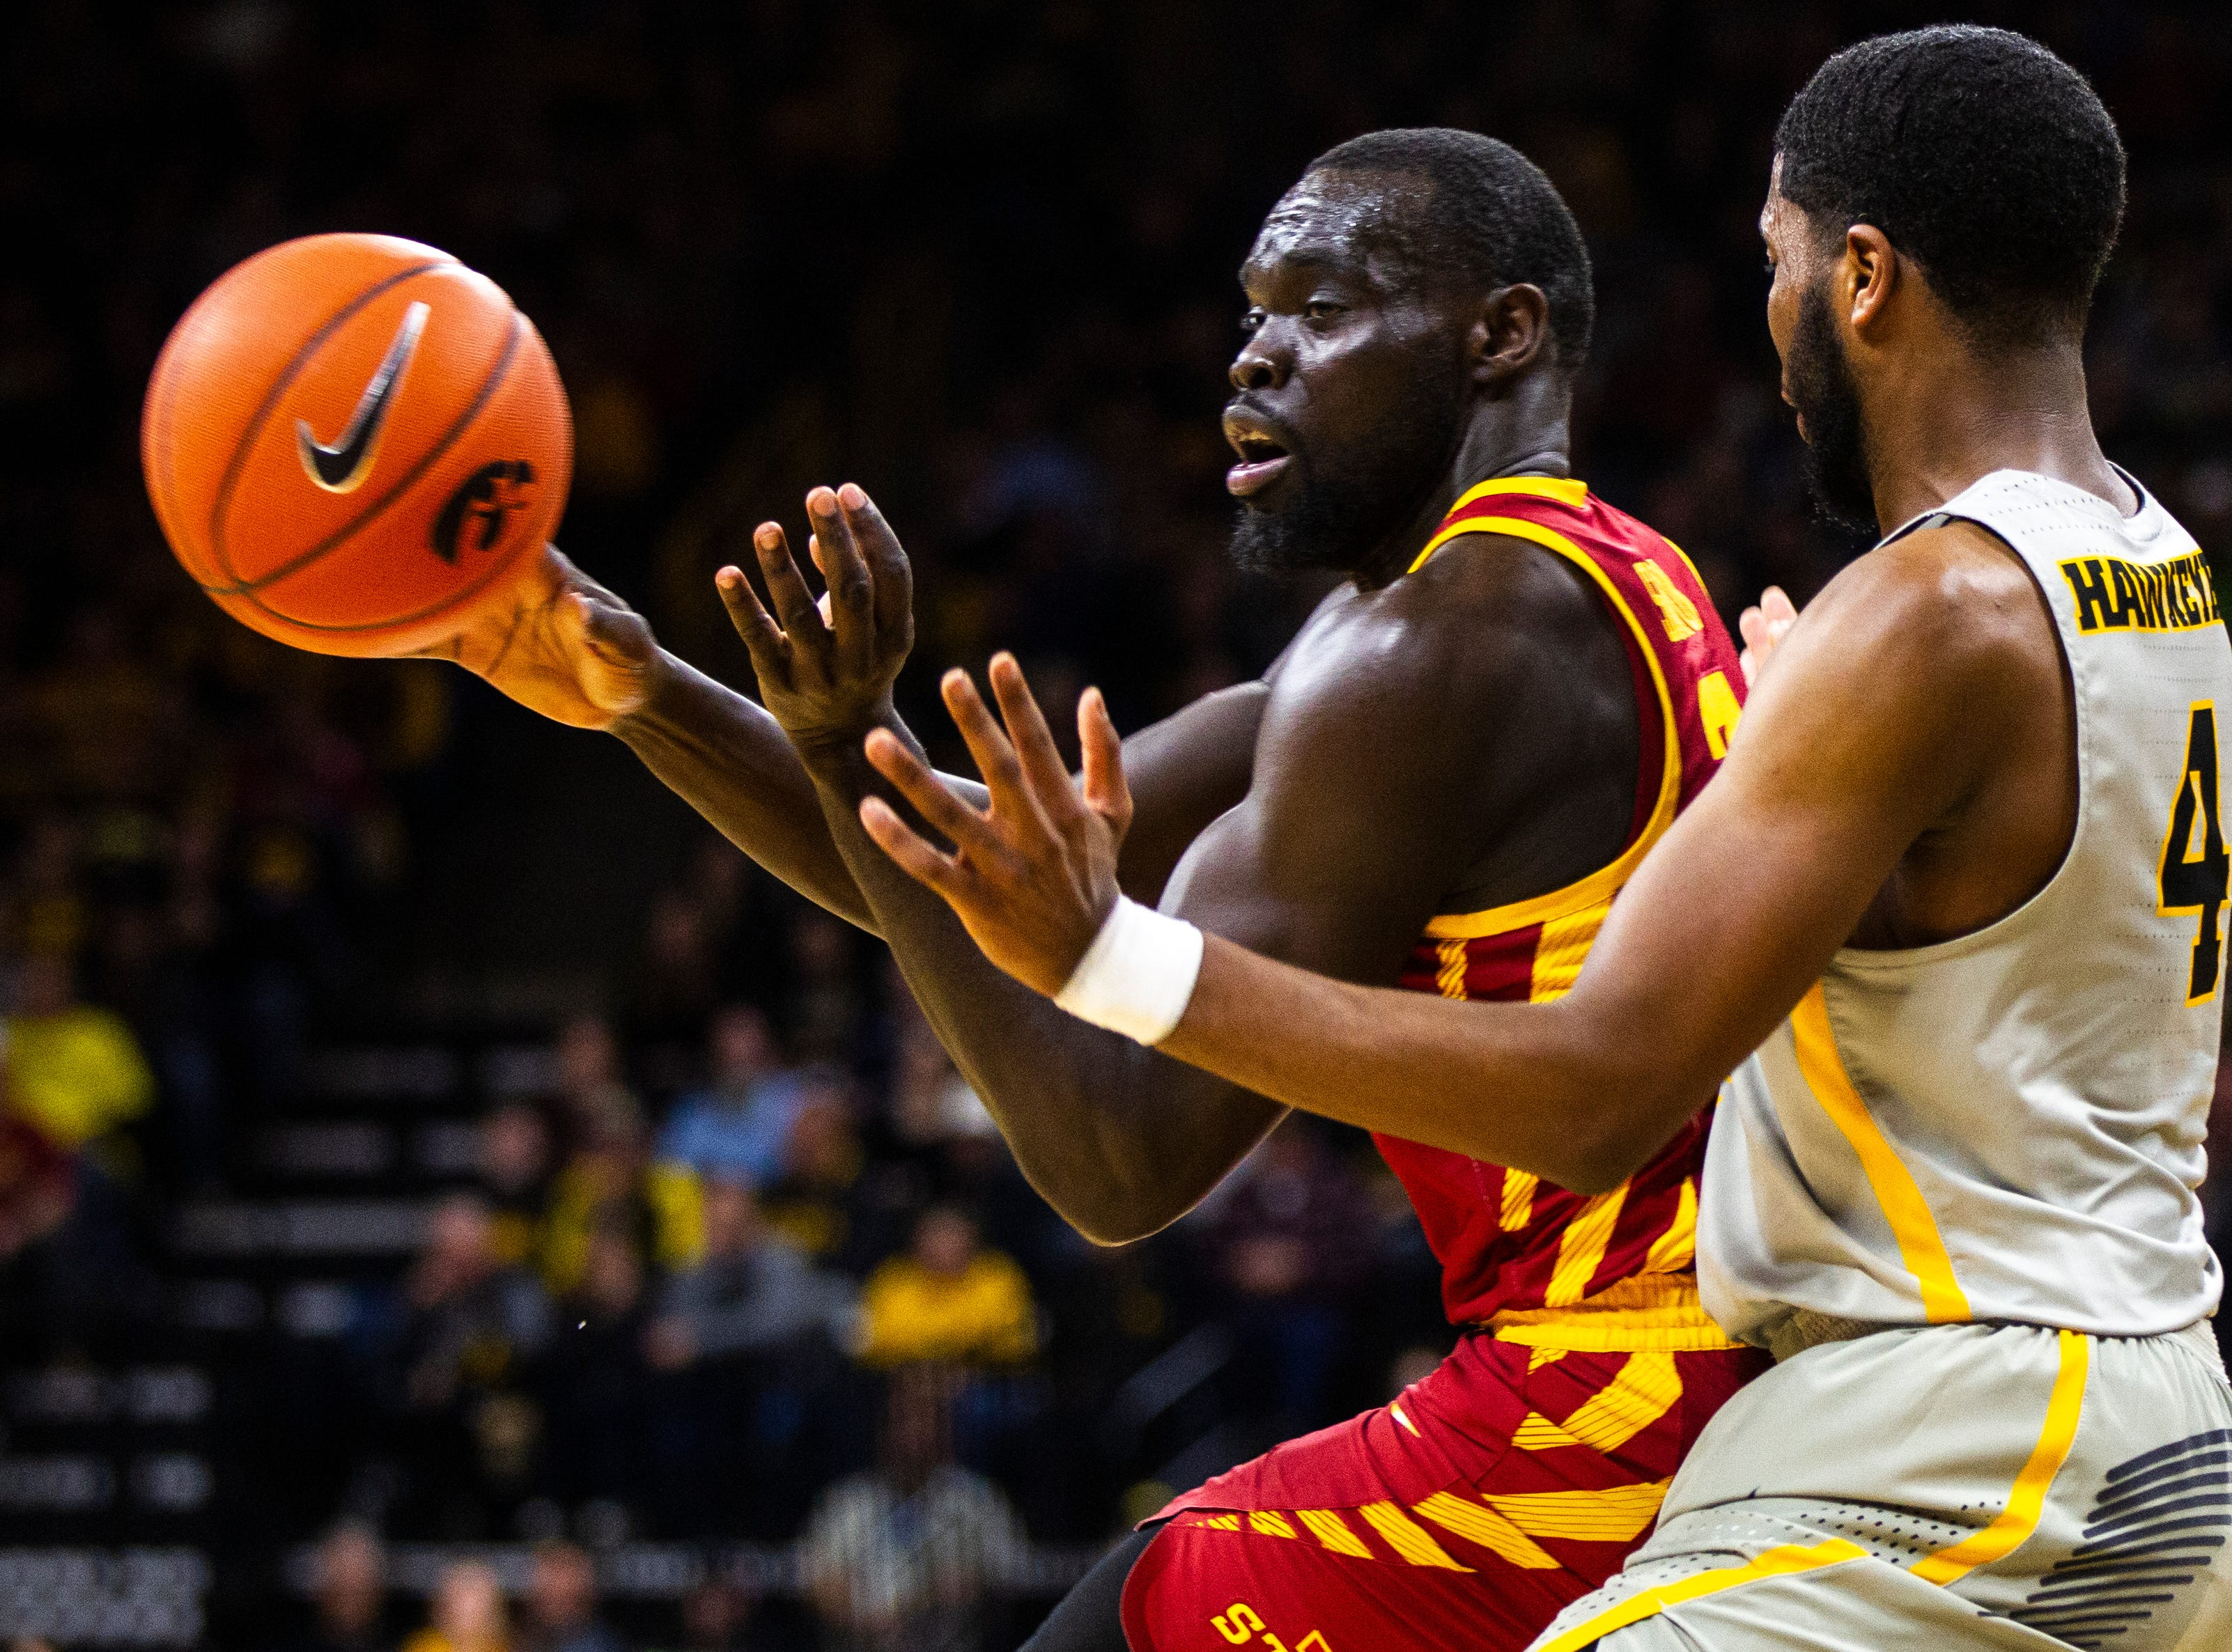 Iowa State guard Marial Shayok (3) passes while being defended by Iowa guard Isaiah Moss (4) during a NCAA Cy-Hawk series men's basketball game on Thursday, Dec. 6, 2018, at Carver-Hawkeye Arena in Iowa City.